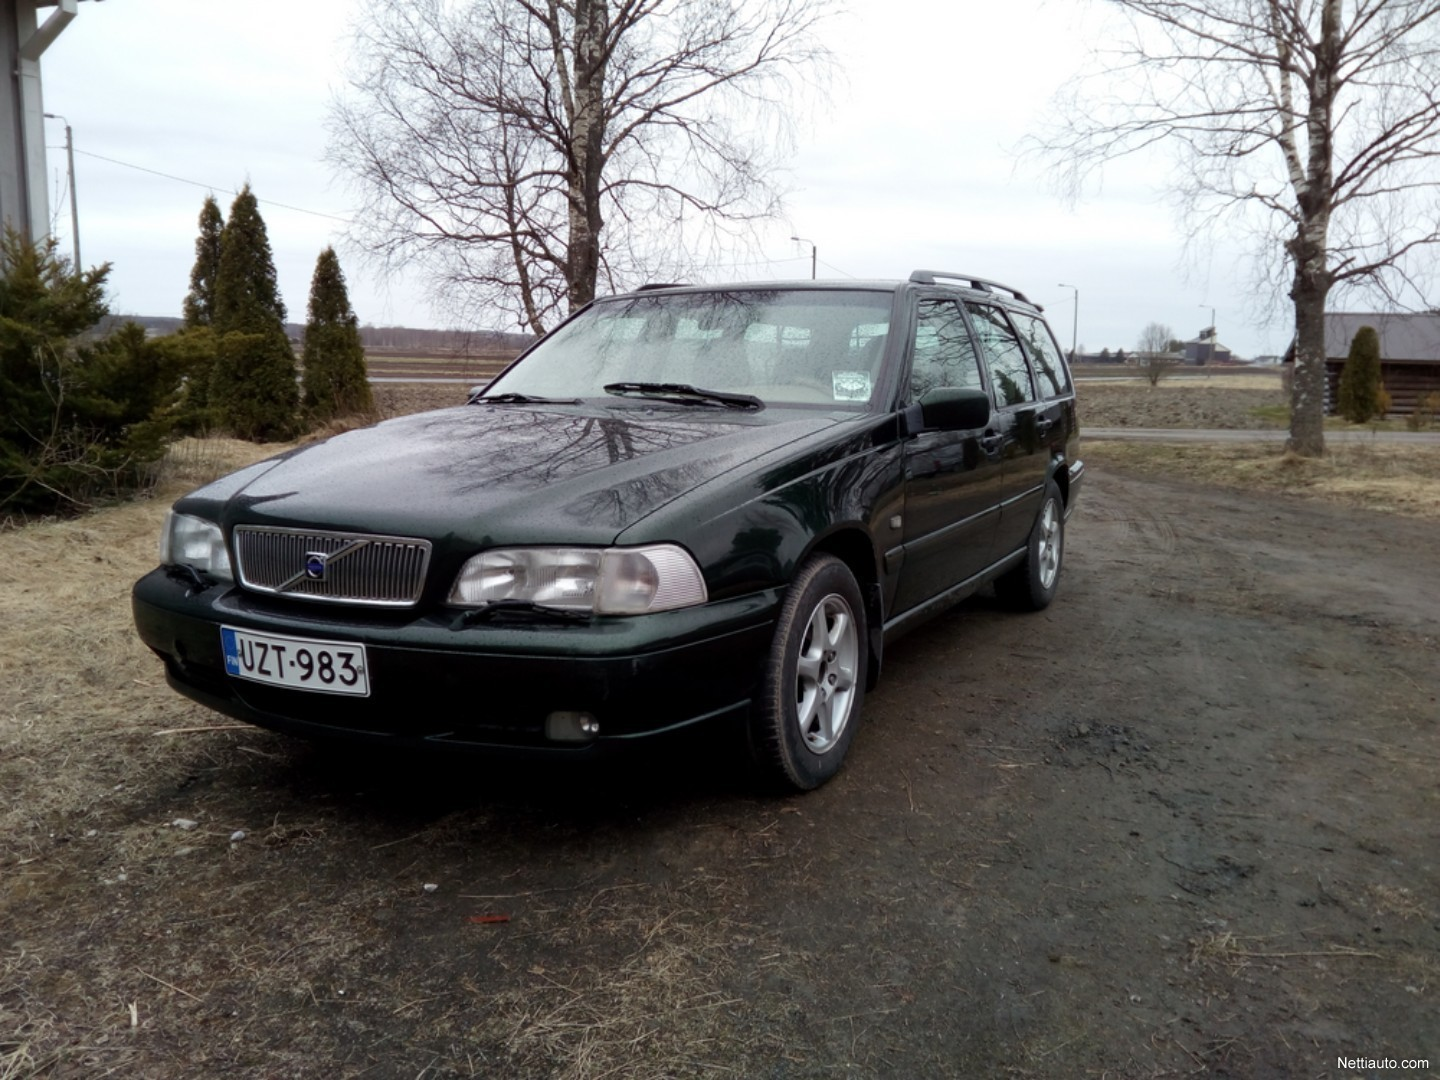 volvo v70 2 4 20 classic spw 125kw station wagon 2000. Black Bedroom Furniture Sets. Home Design Ideas